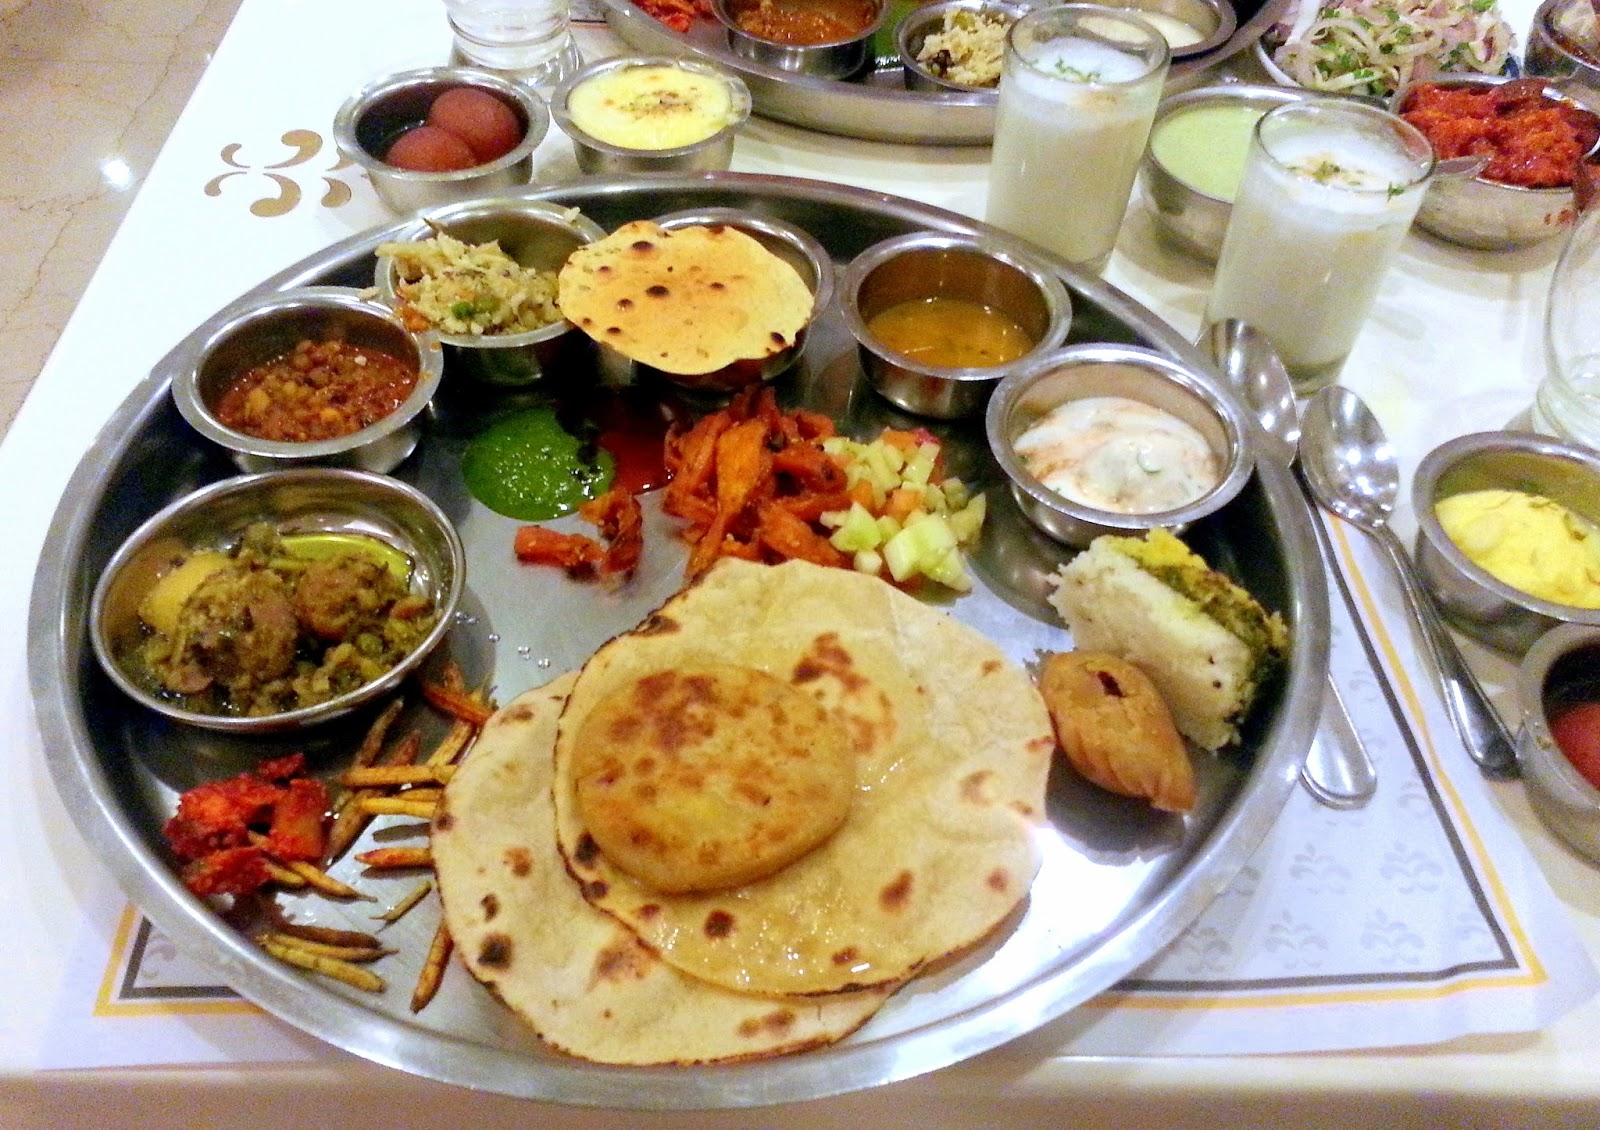 Ayurveda diet chart according to the seasons for Ayurvedic cuisine